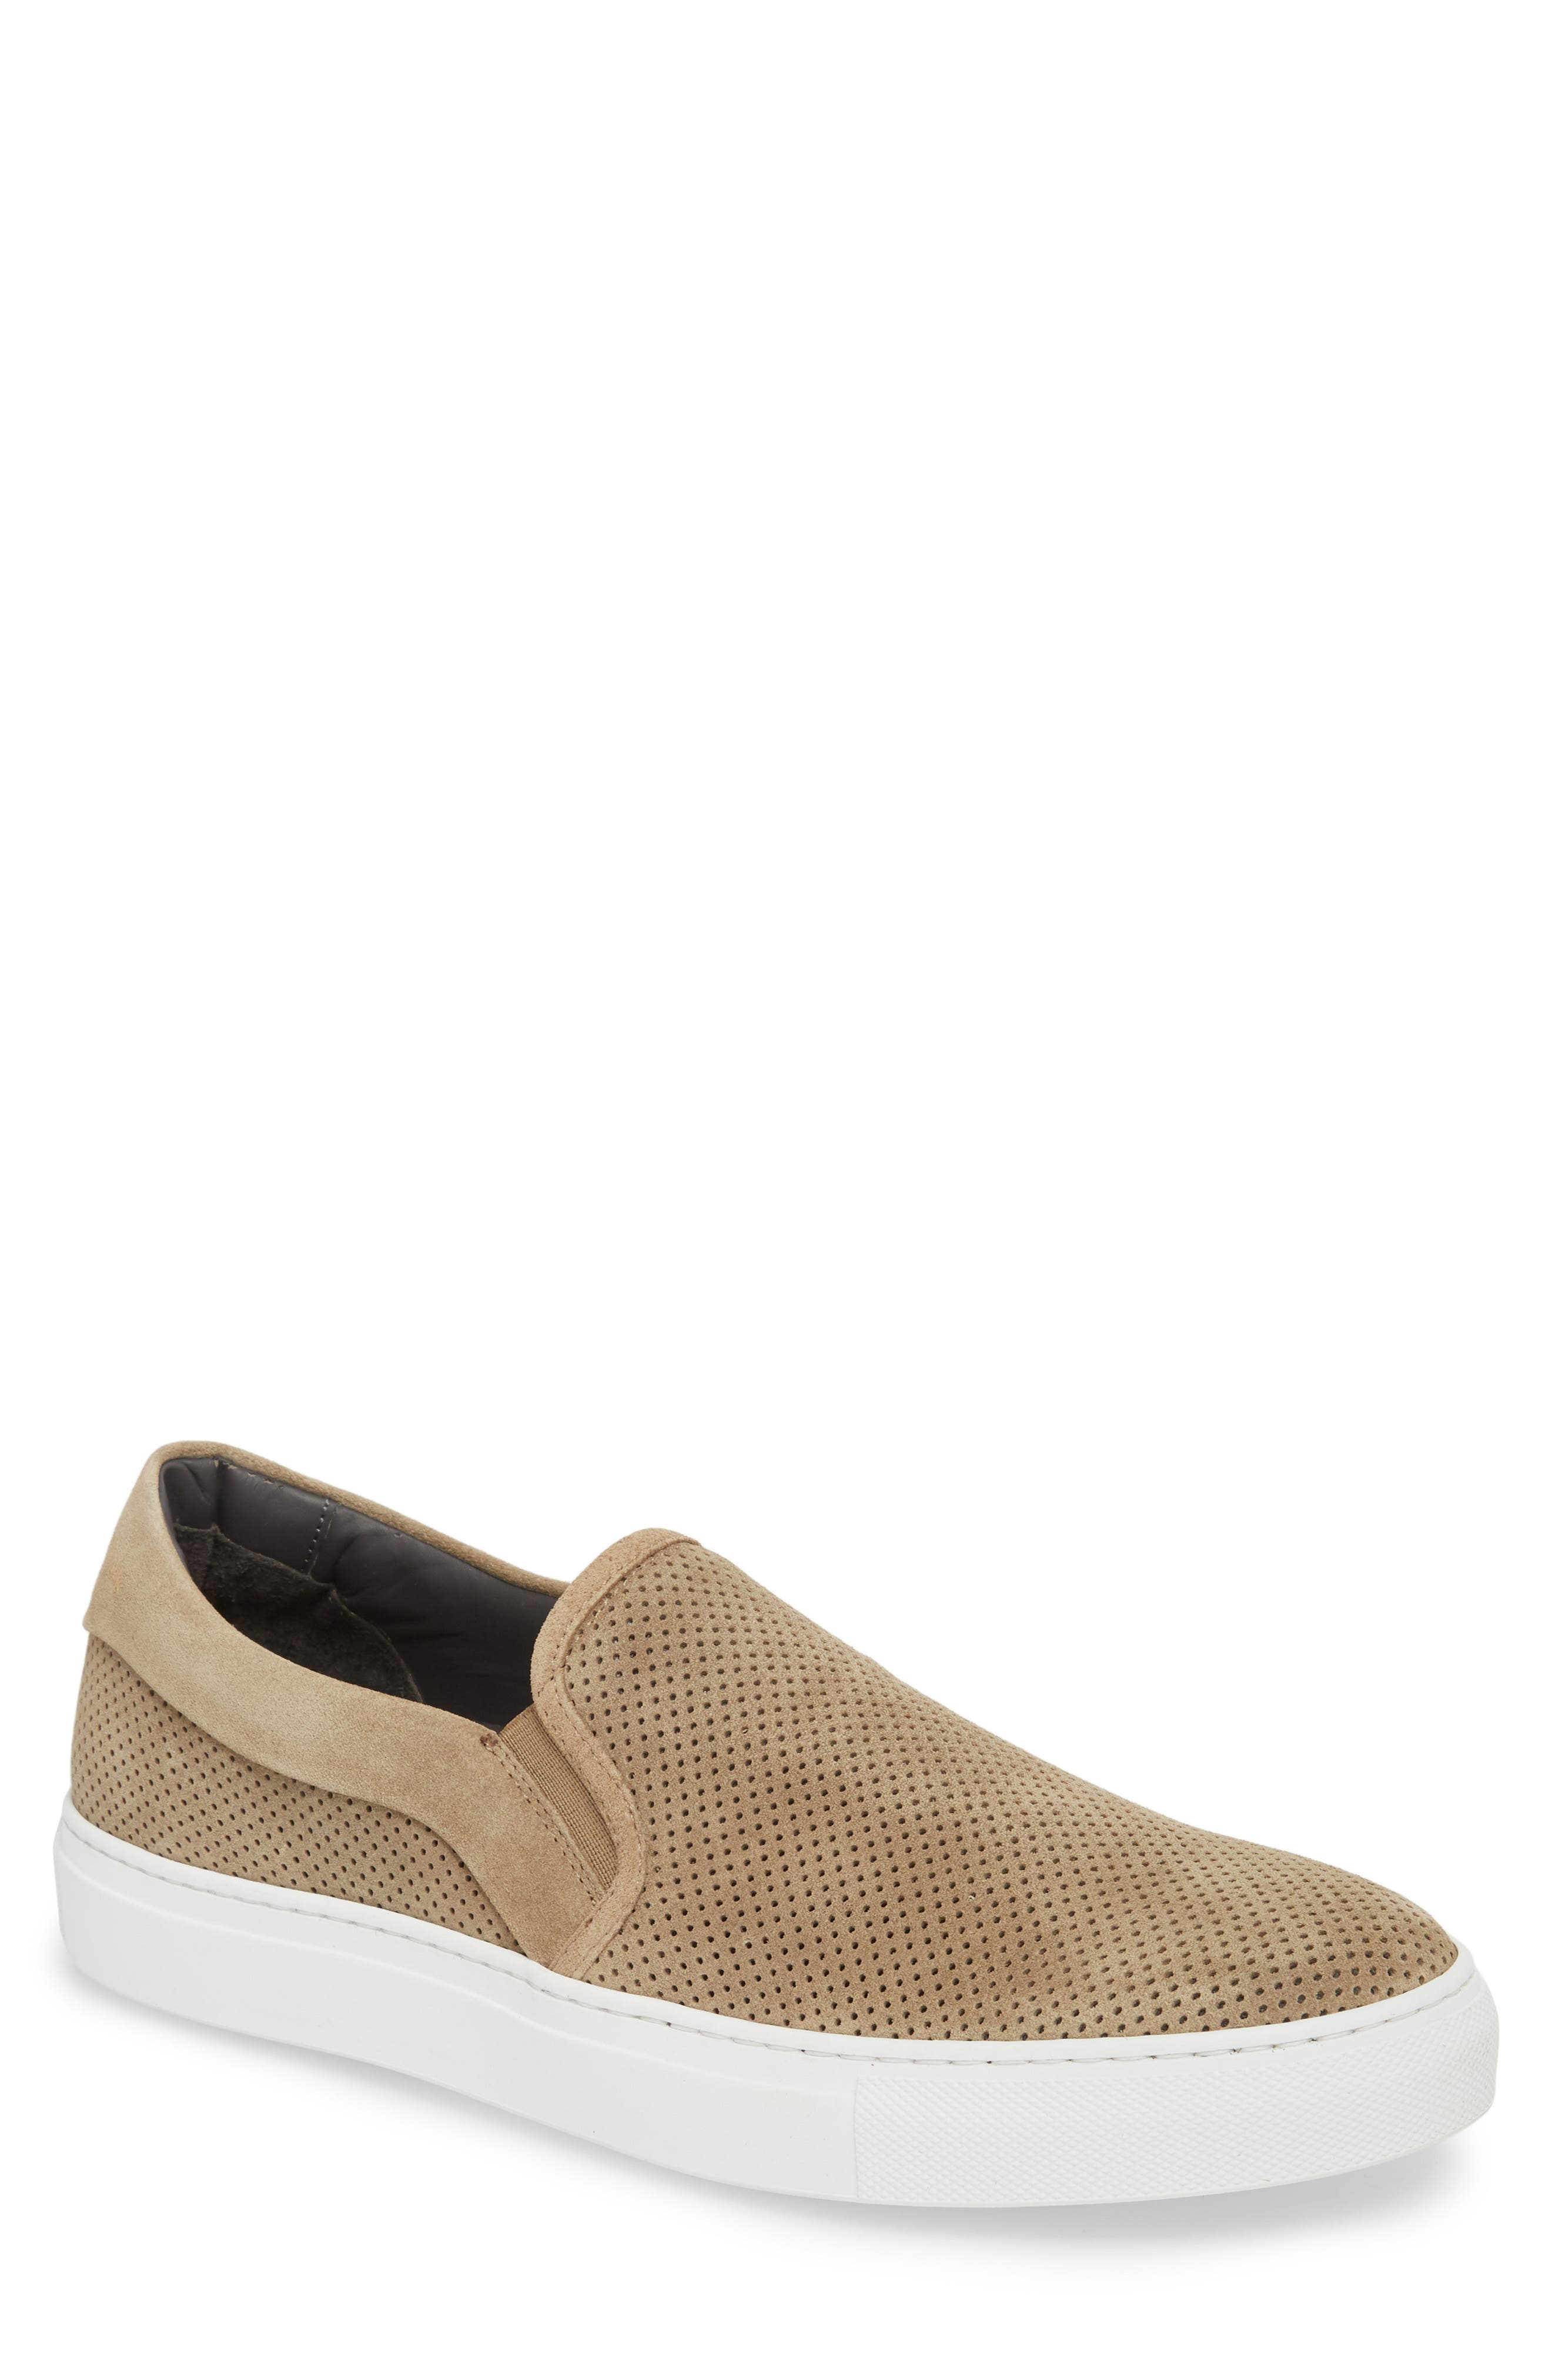 Buelton Perforated Slip-On Sneaker,                         Main,                         color, BROWN SUEDE